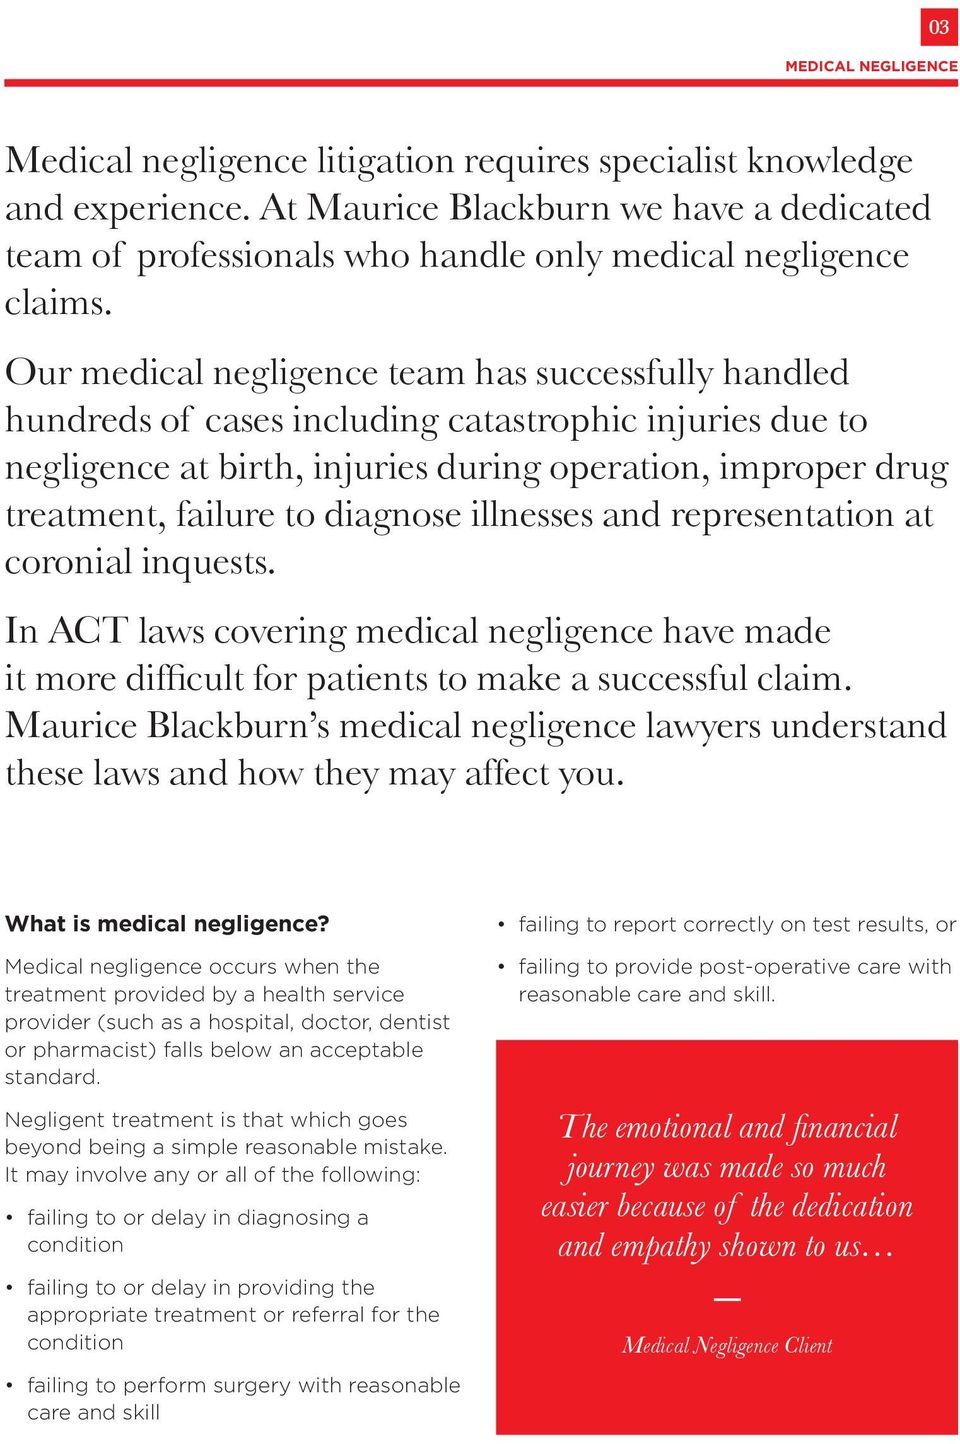 Our medical negligence team has successfully handled hundreds of cases including catastrophic injuries due to negligence at birth, injuries during operation, improper drug treatment, failure to